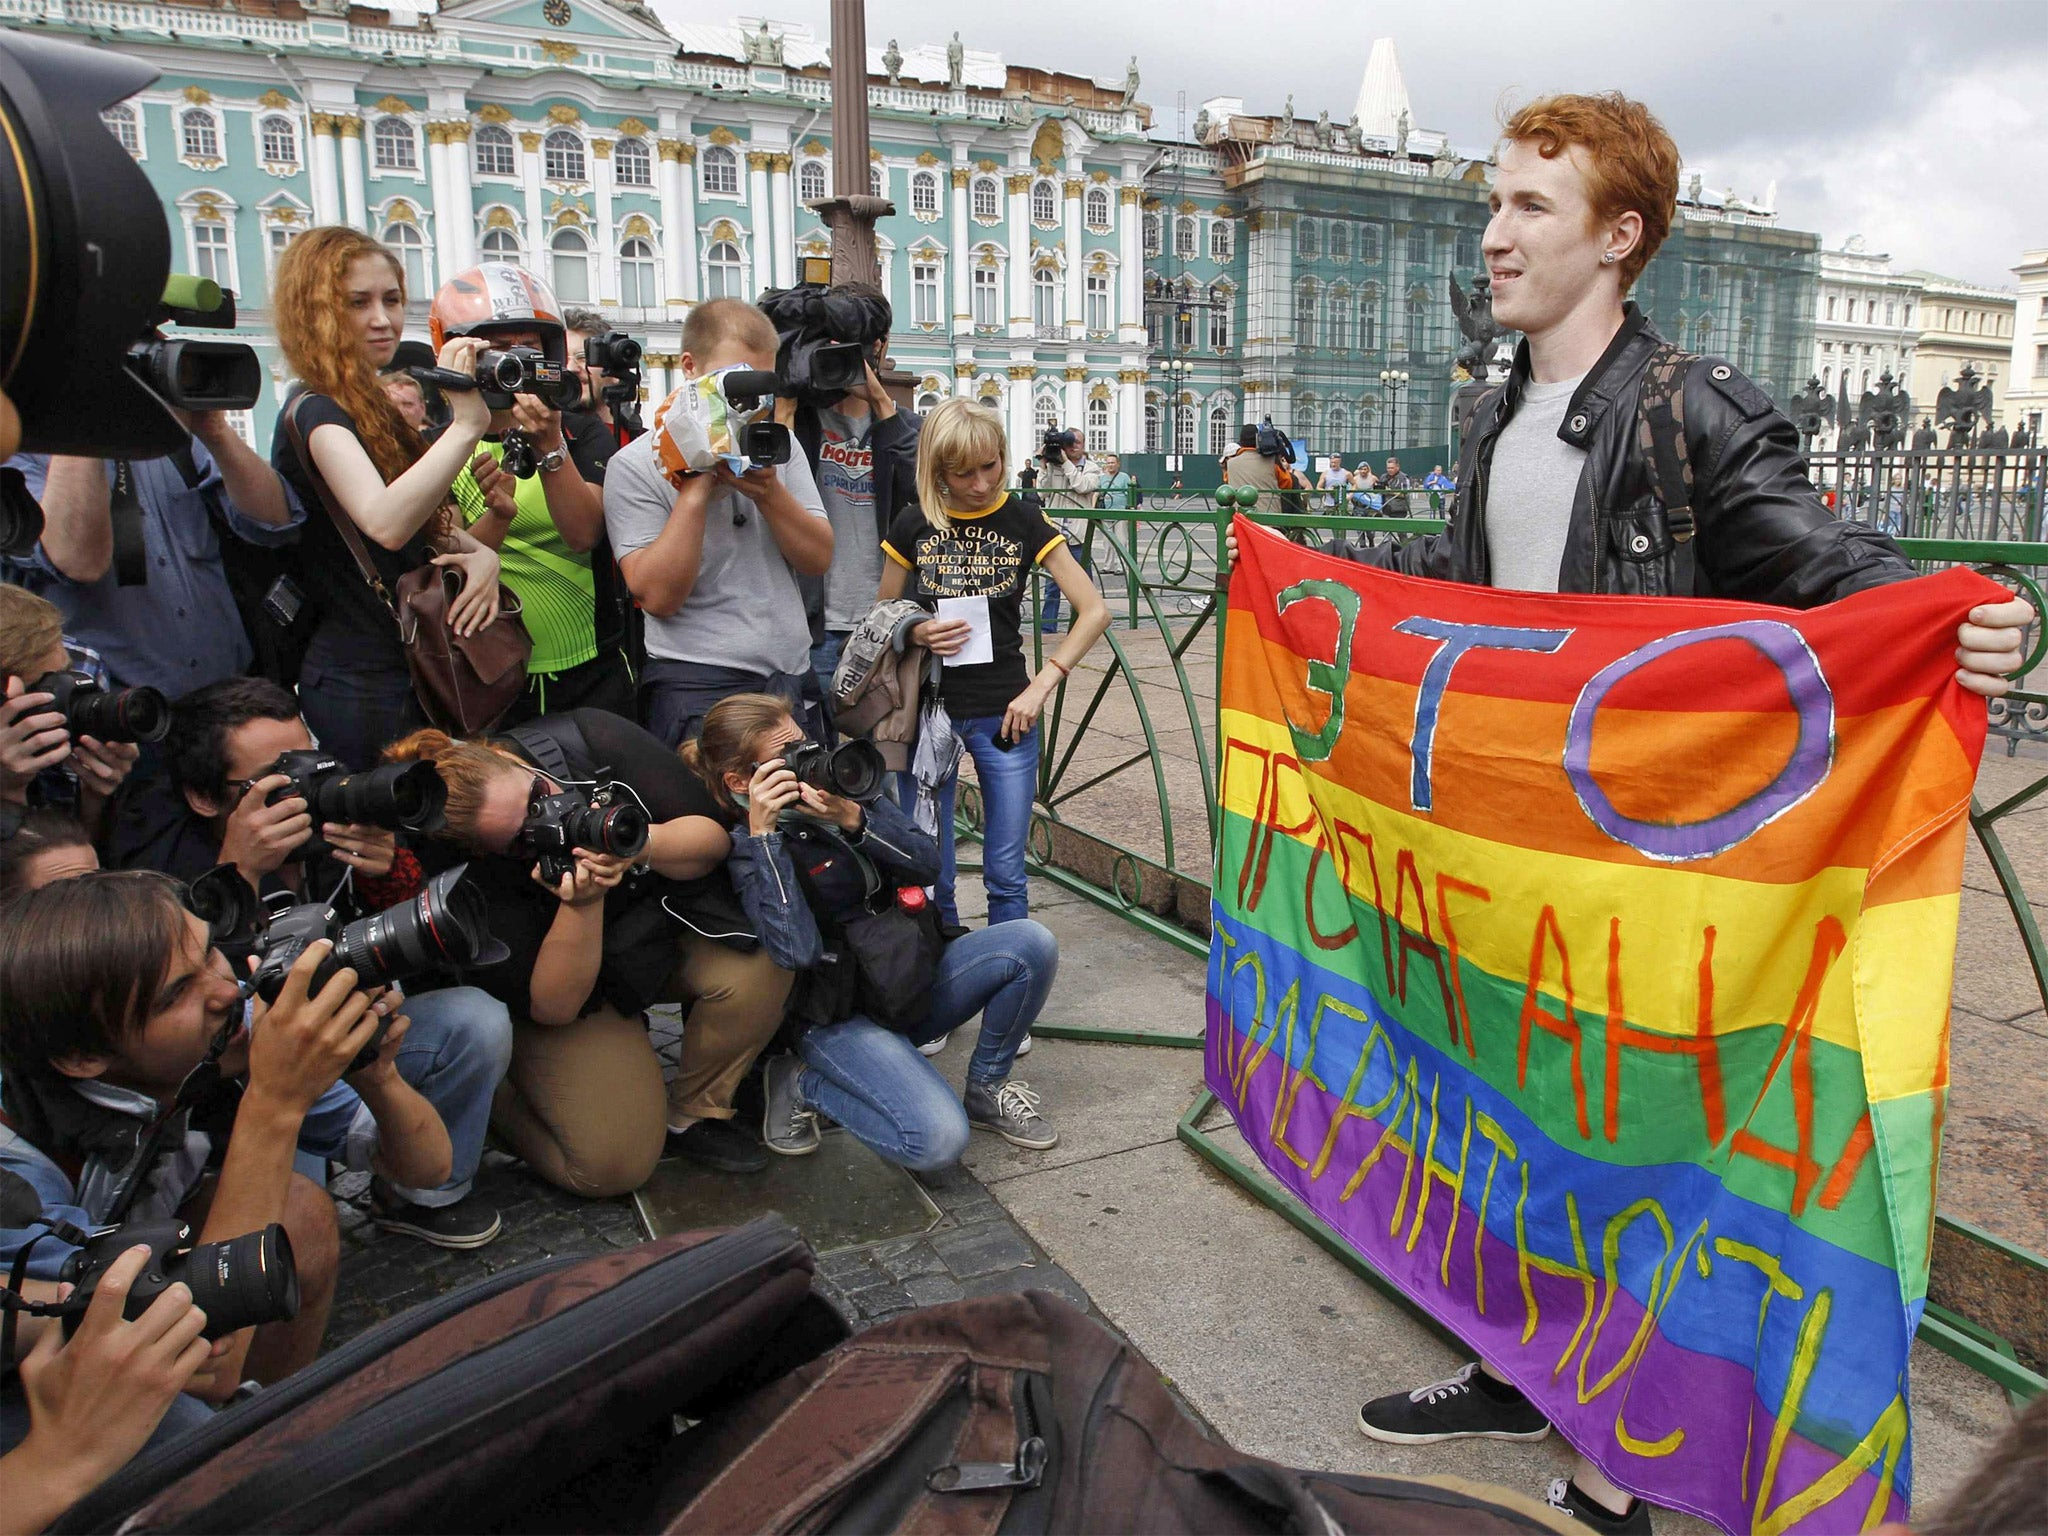 Gay marriage proponents fear result of russian referendum